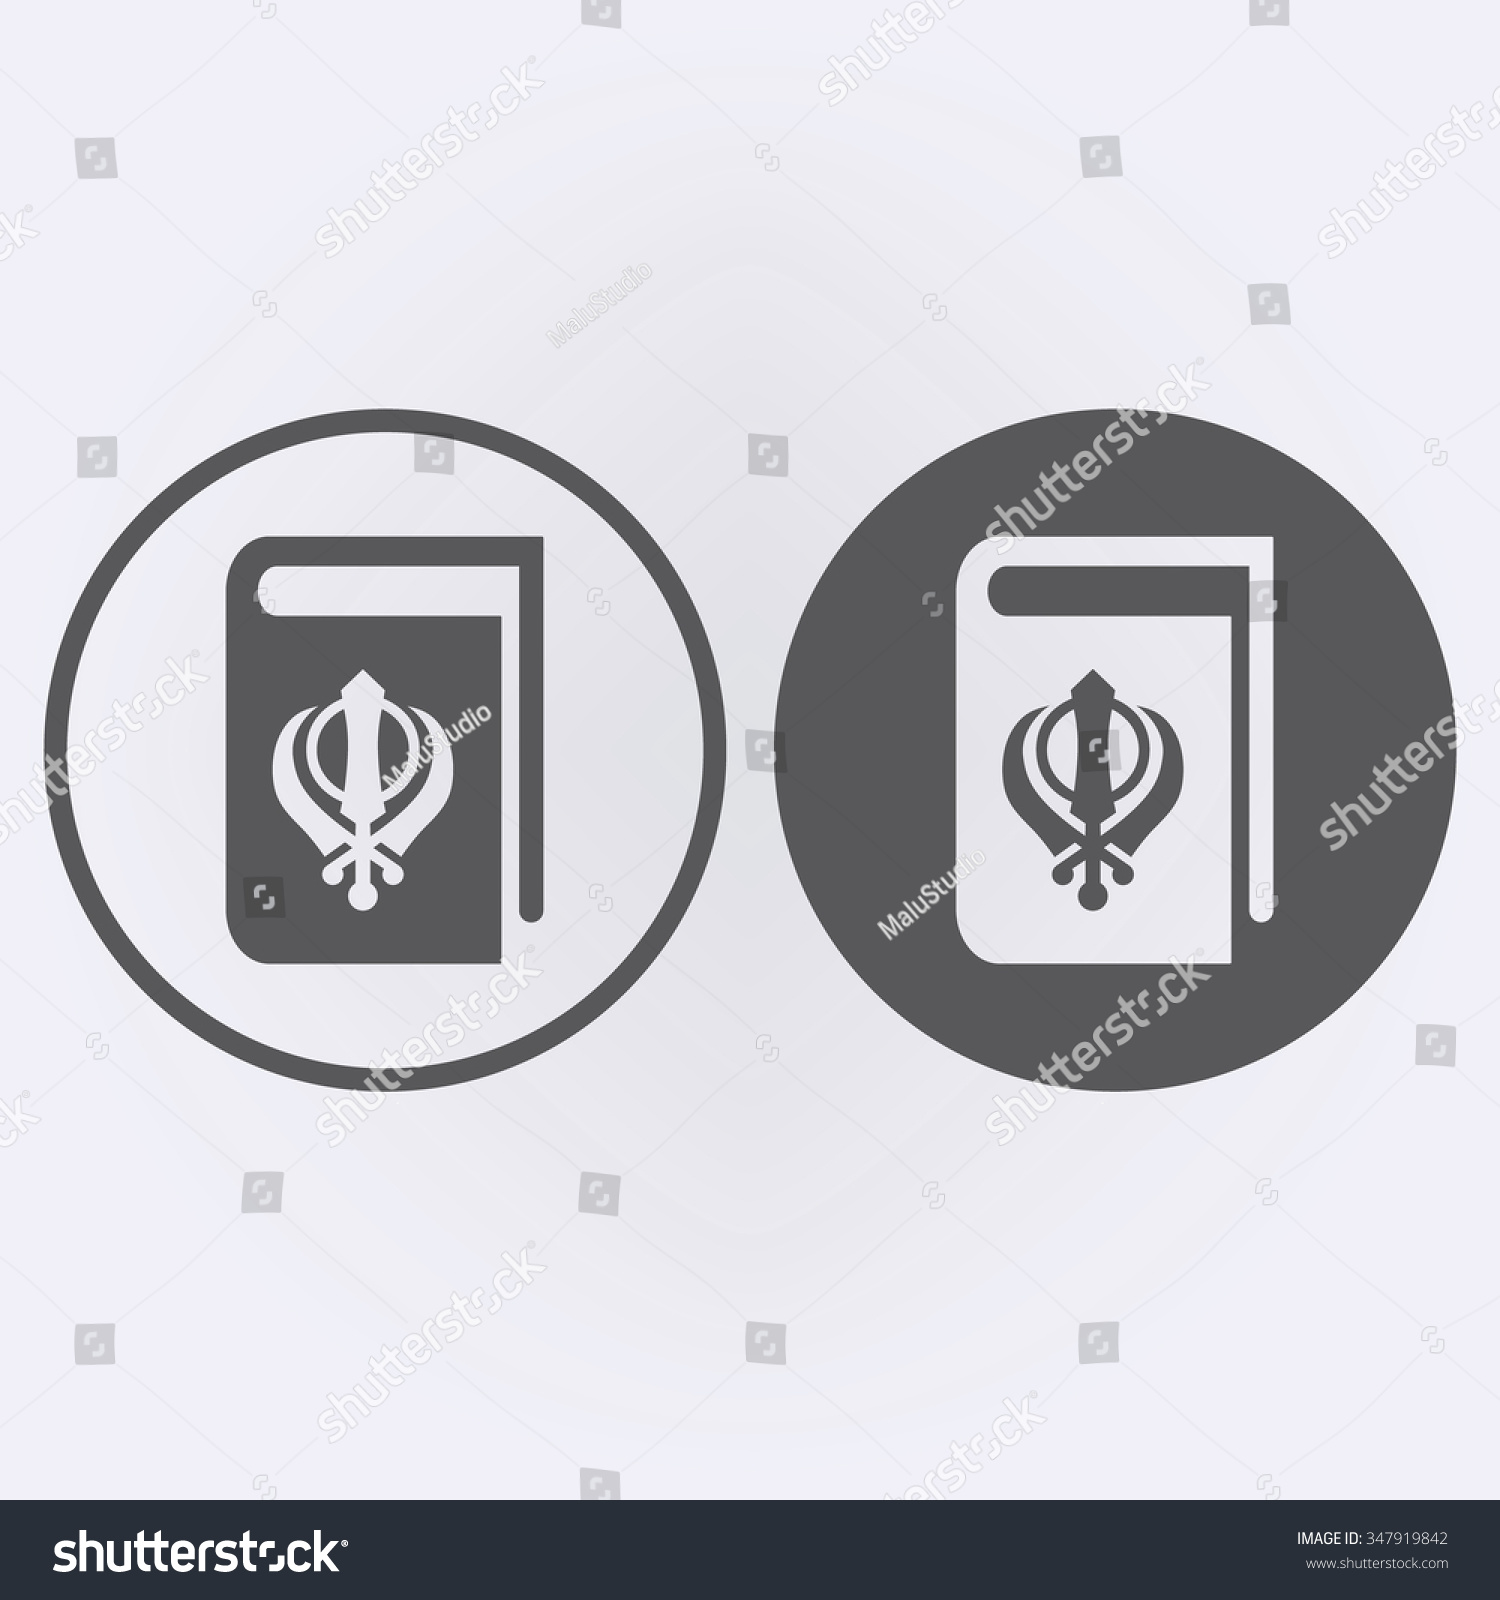 Sikhism Book Icon Set Circle Book Stock Vector 347919842 Shutterstock